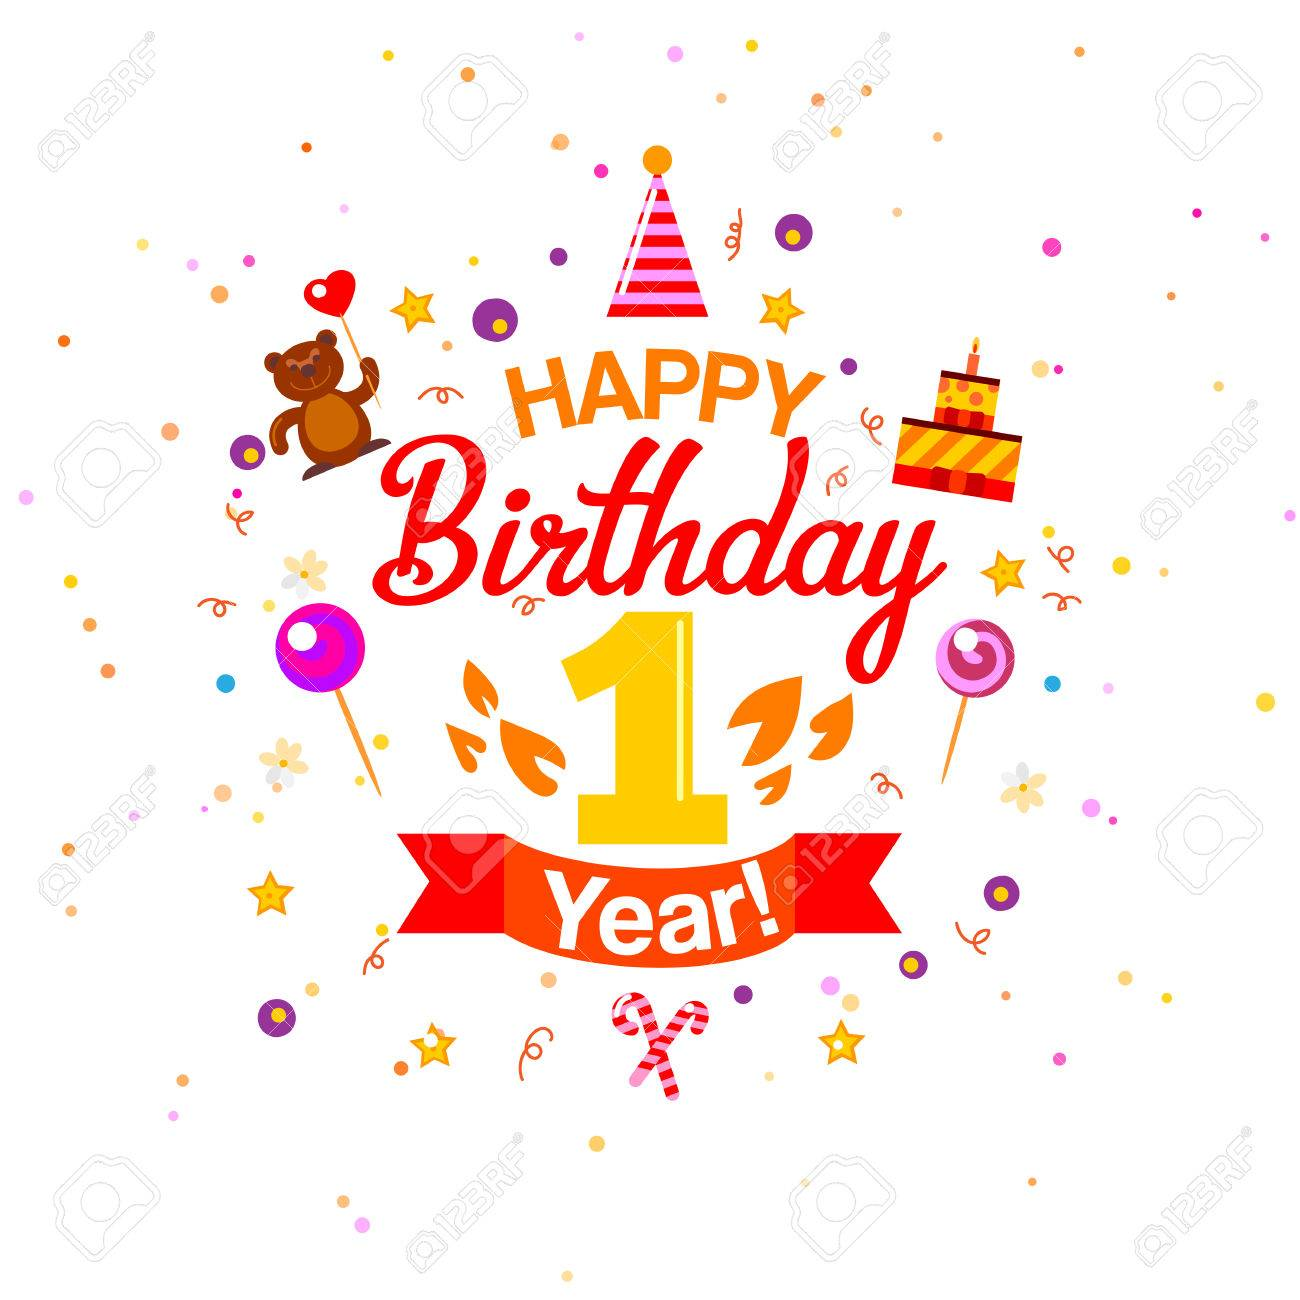 First Happy Birthday Greetings Card First Year Kids Birthday Royalty Free Cliparts Vectors And Stock Illustration Image 53594285